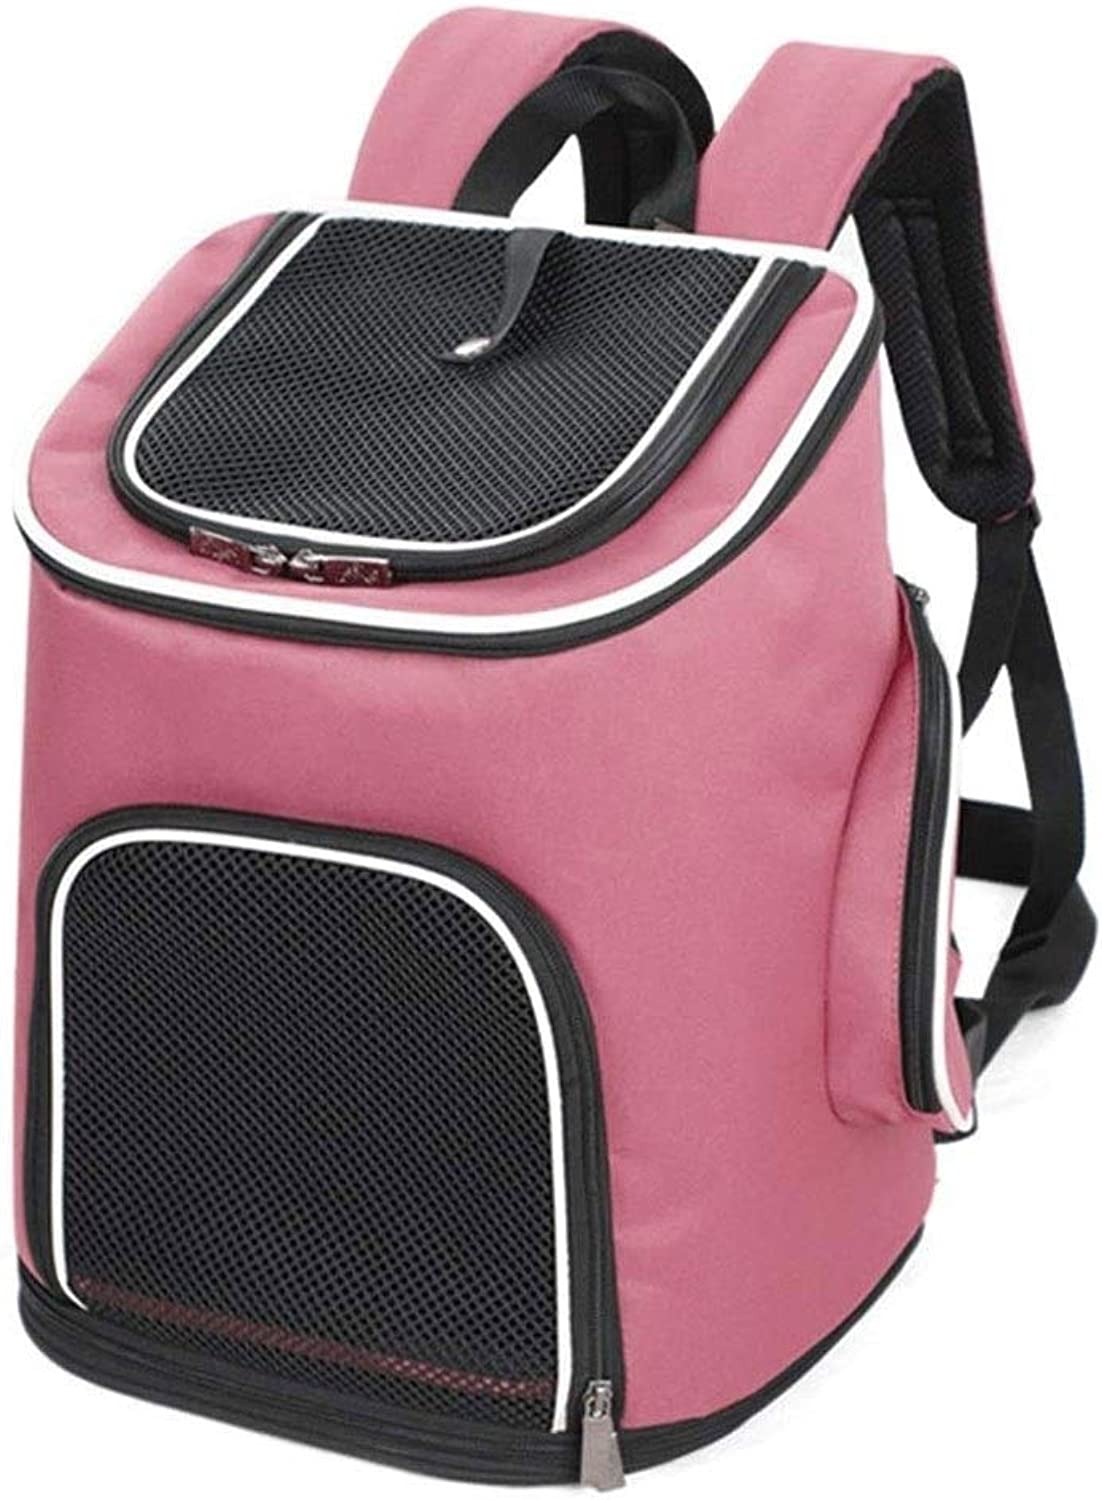 Anap Pets SoftSided Pet Carrier Backpack for Small Dogs and Cats AirlineApproved, Designed for Travel, Hiking, Walking & Outdoor Use